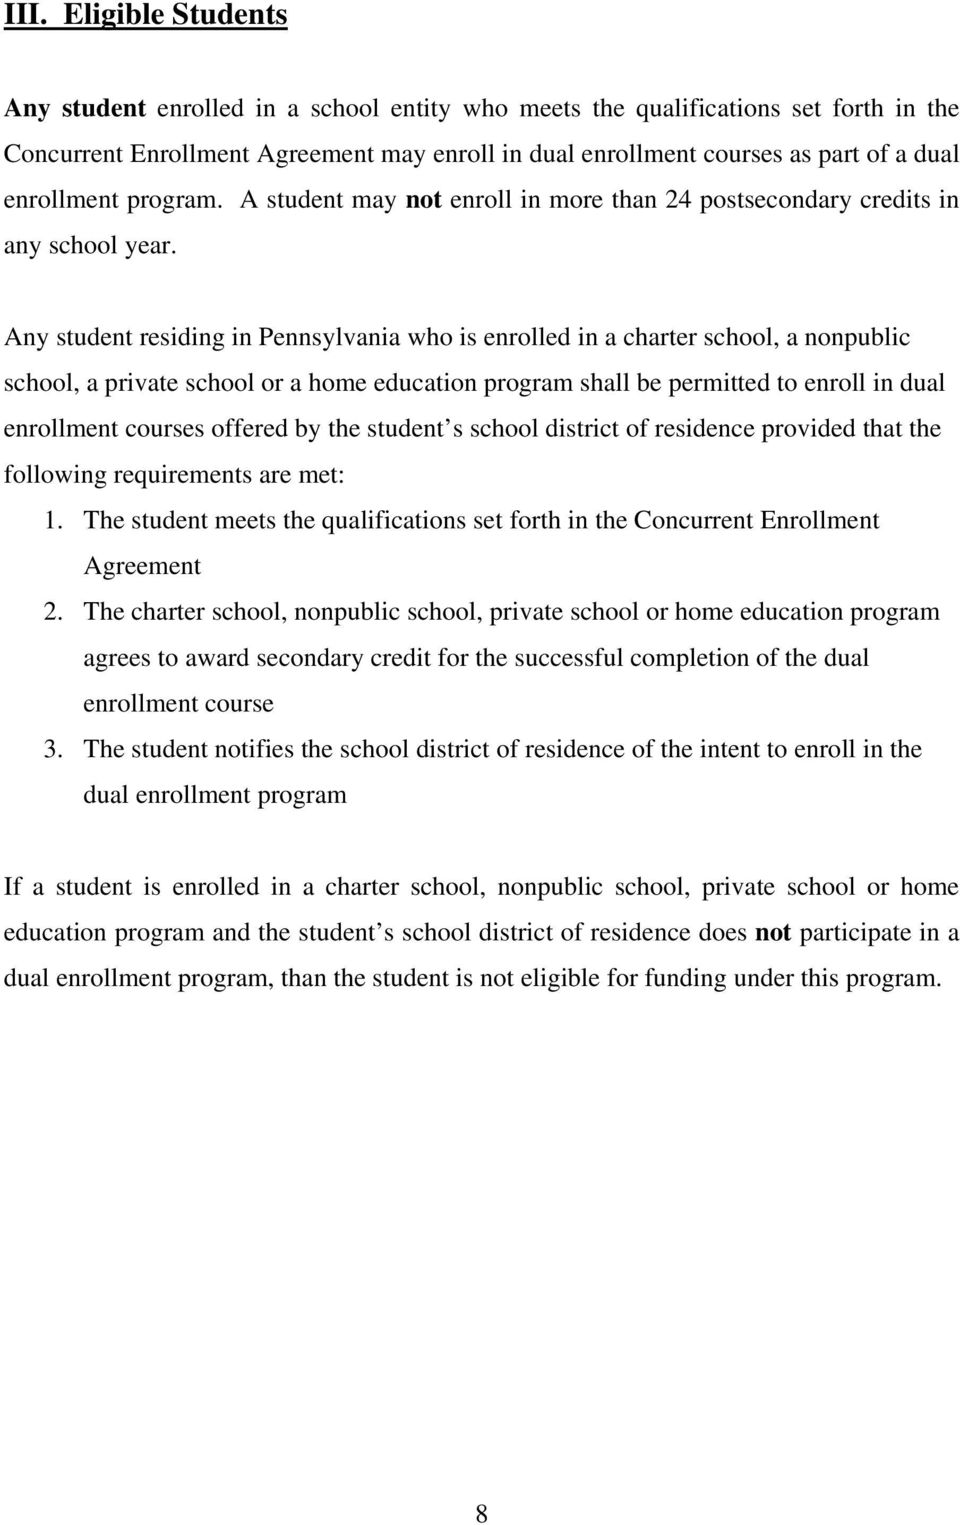 Any student residing in Pennsylvania who is enrolled in a charter school, a nonpublic school, a private school or a home education program shall be permitted to enroll in dual enrollment courses